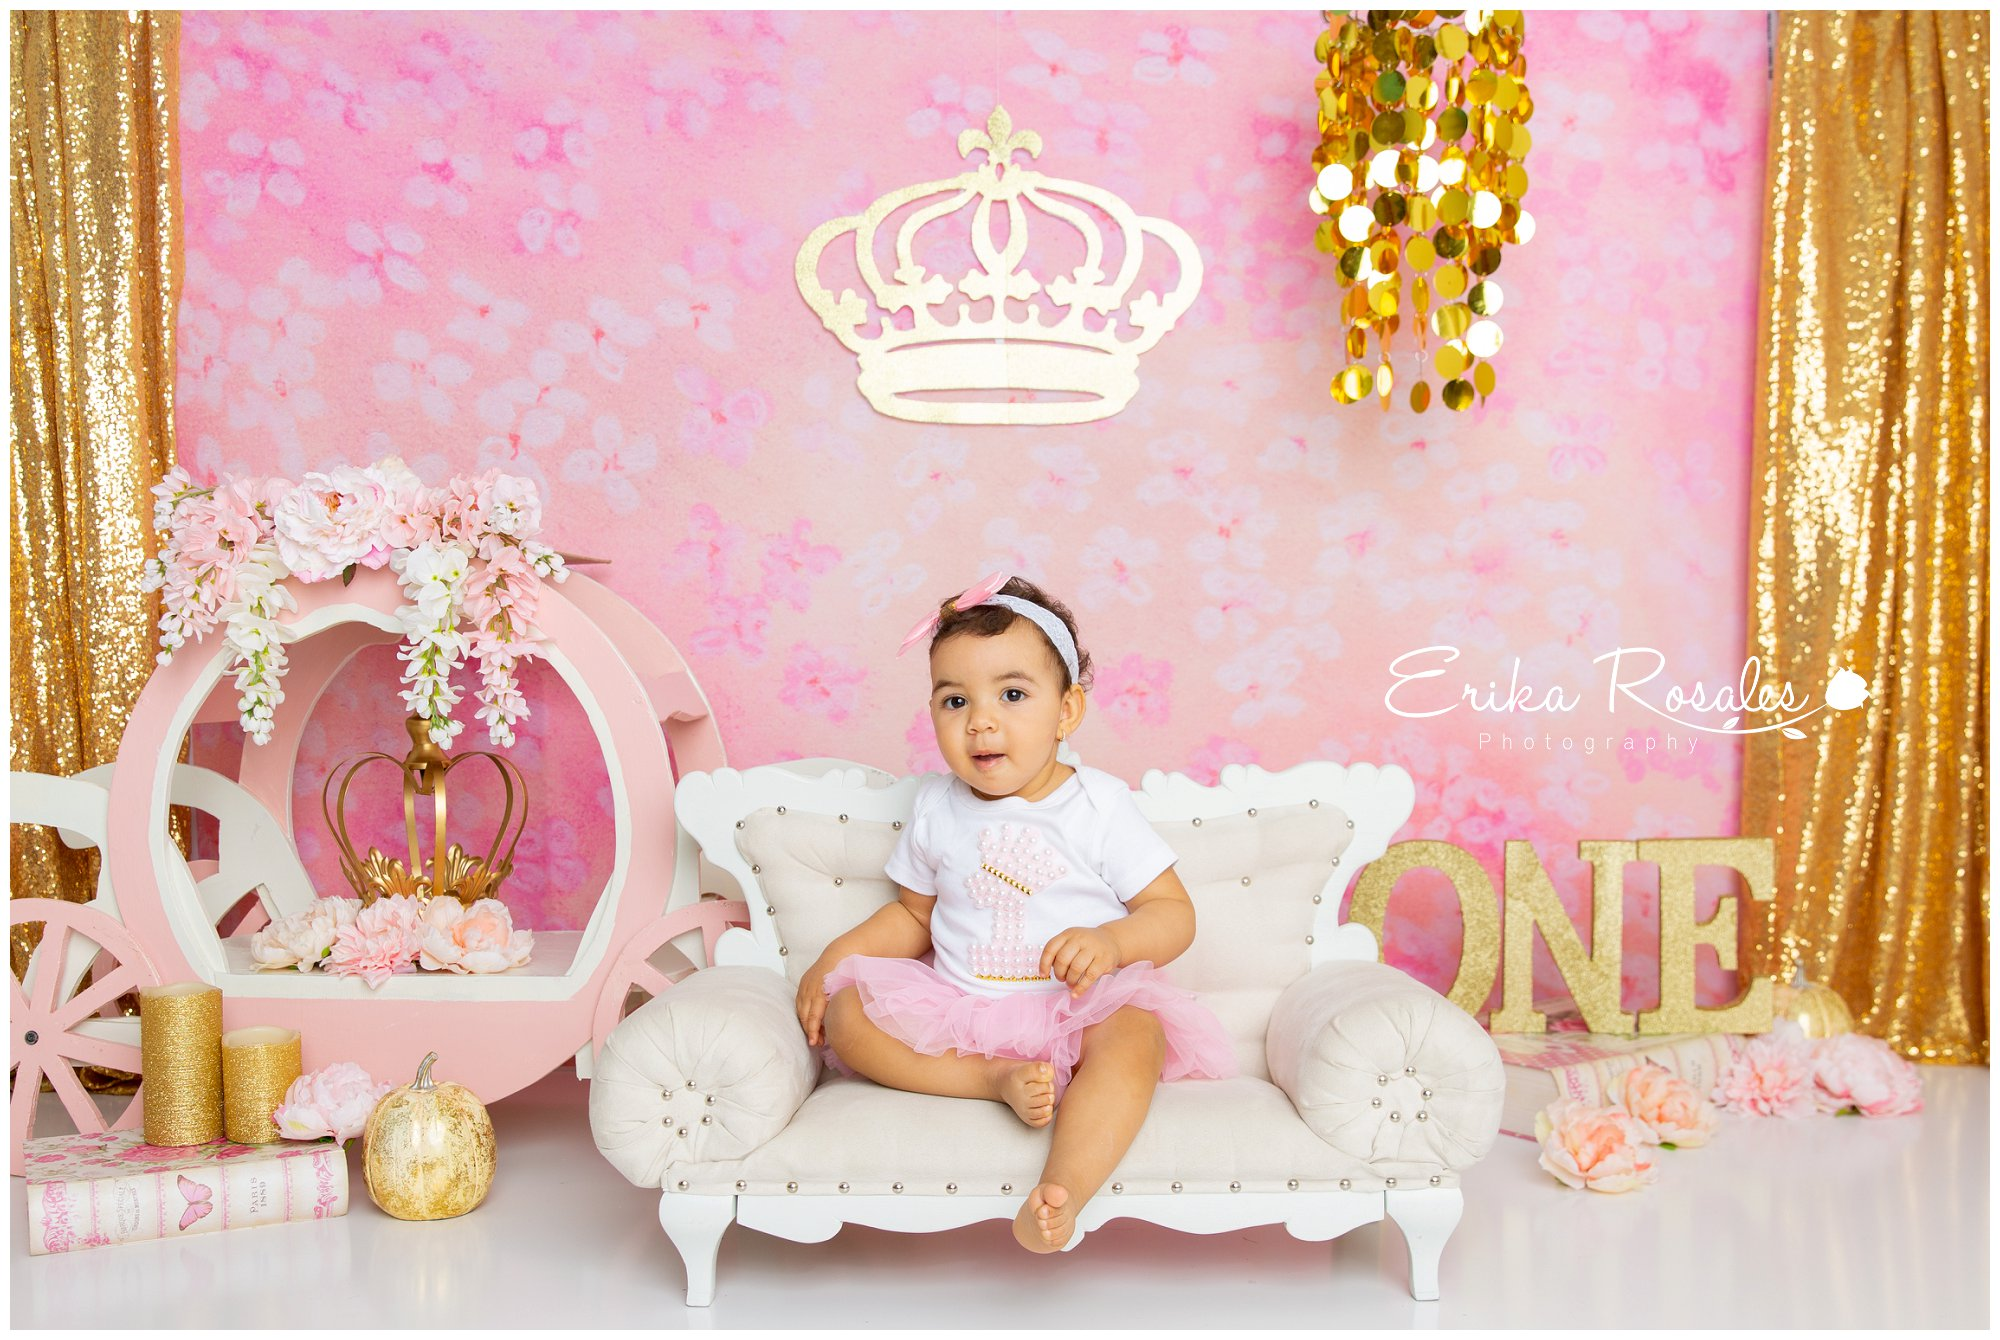 Posted in children photo session tagged baby girl birthday baby girl photo session baby girl studio photo session baby paris theme photo session